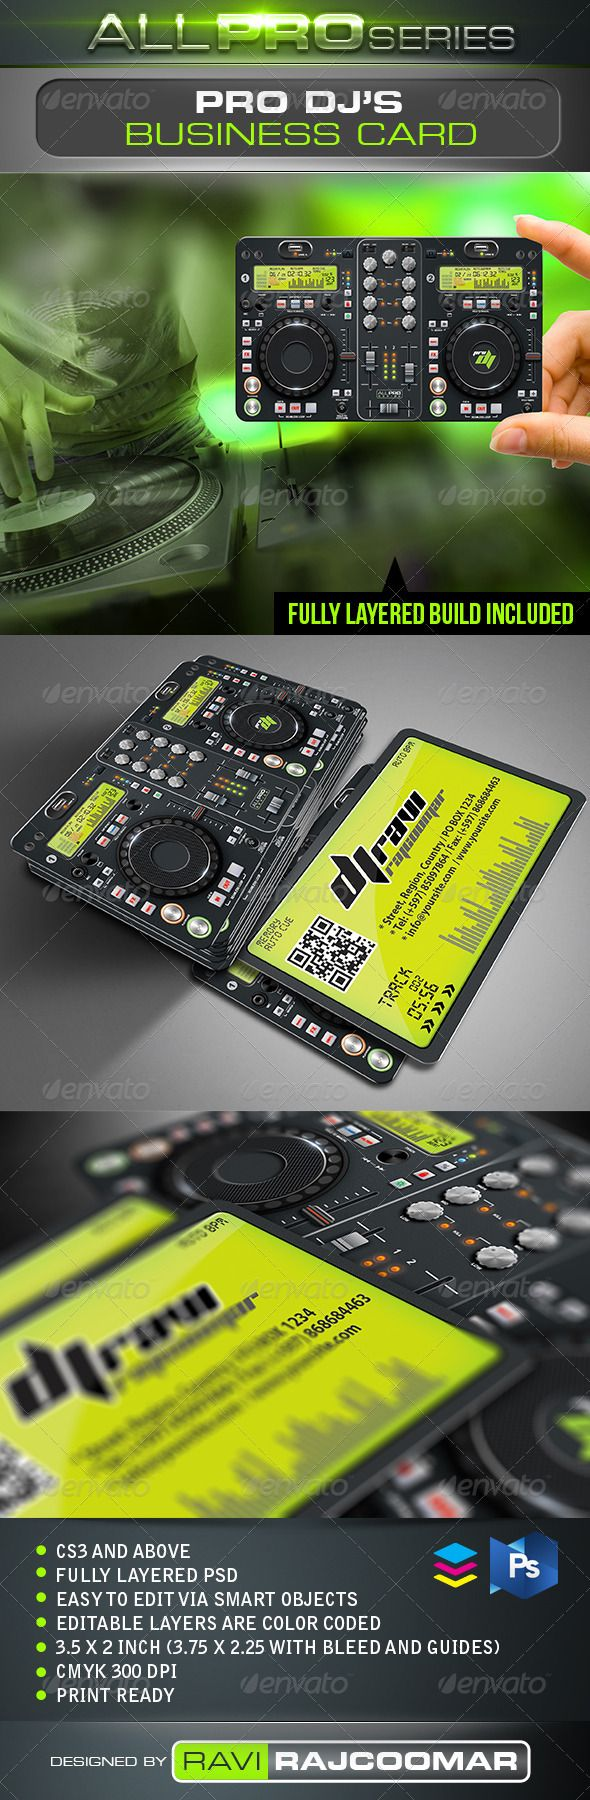 Pro DJ Business Card  #GraphicRiver          CS3 and above  Fully layered  CMYK mode 300 DPI   Easy to edit via smart objects  Editable layers are color coded  3.75×2.25 inch dimension including bleed  Print ready  Help guide Included    Fonts info included in the instruction file and they can be obtained for free.   Very easy to customize.   Thanks for your support and please don't forget to rate.     Created: 19June12 GraphicsFilesIncluded: PhotoshopPSD Layered: Yes…